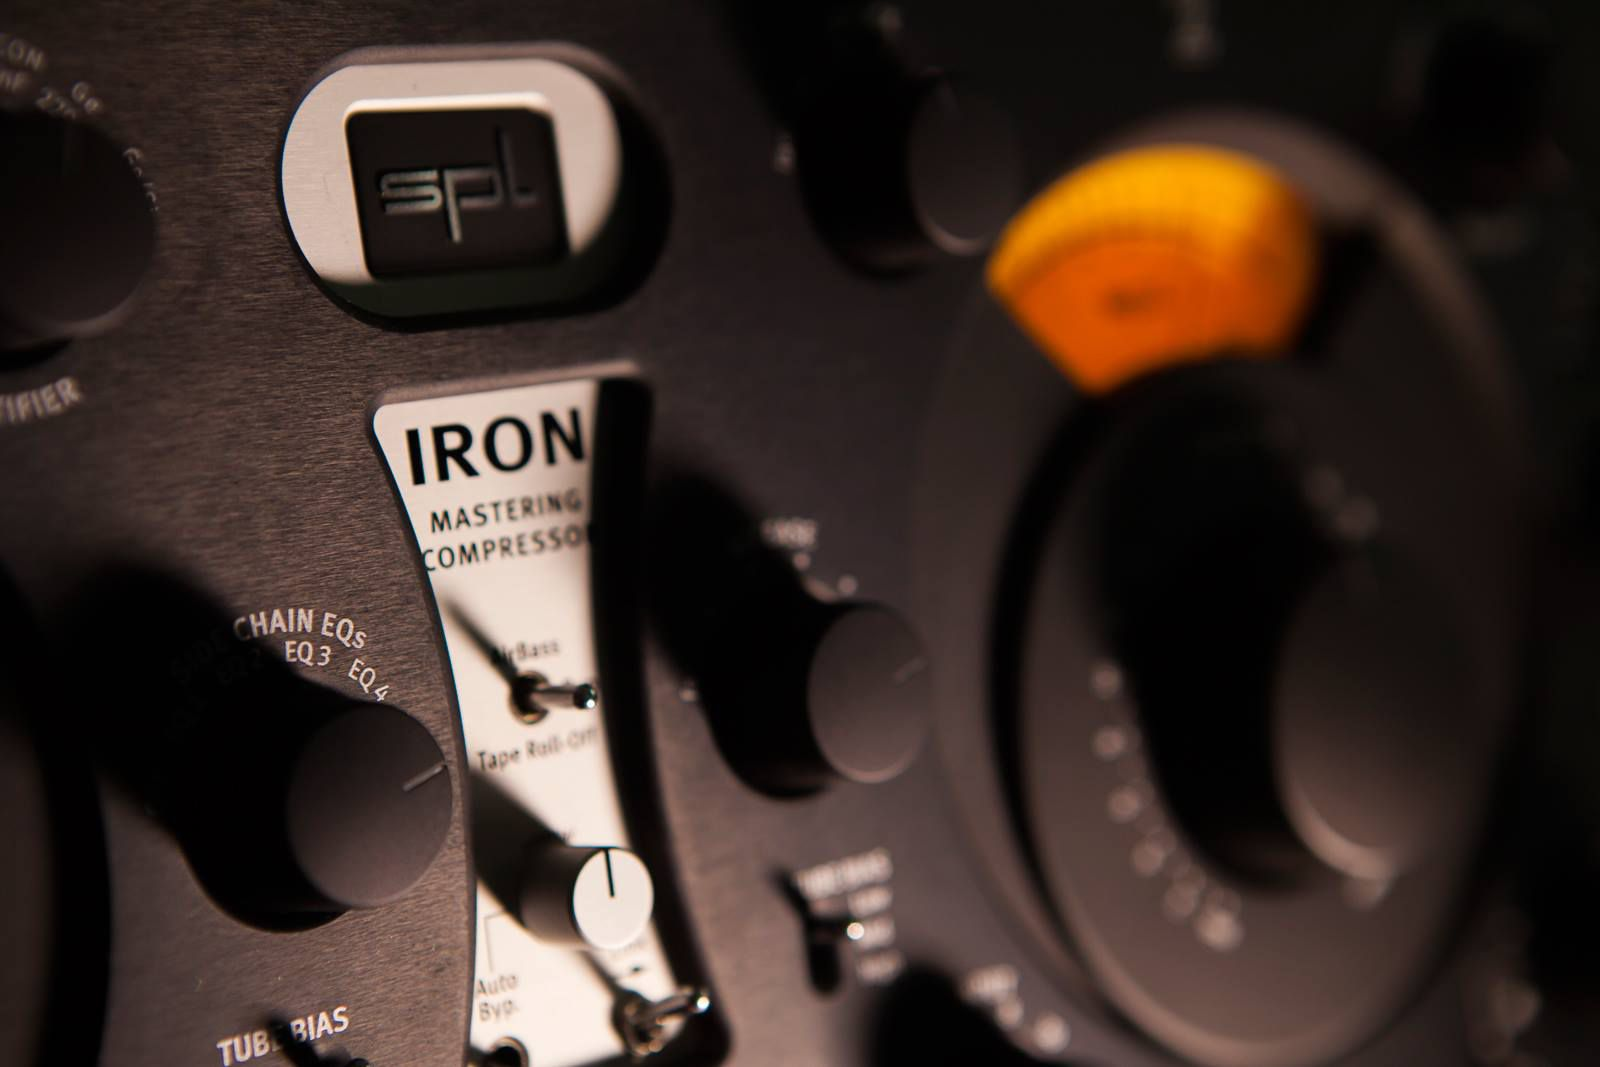 SPL Iron - no, you're not dreaming... it will be real and it will probbaly sound great!